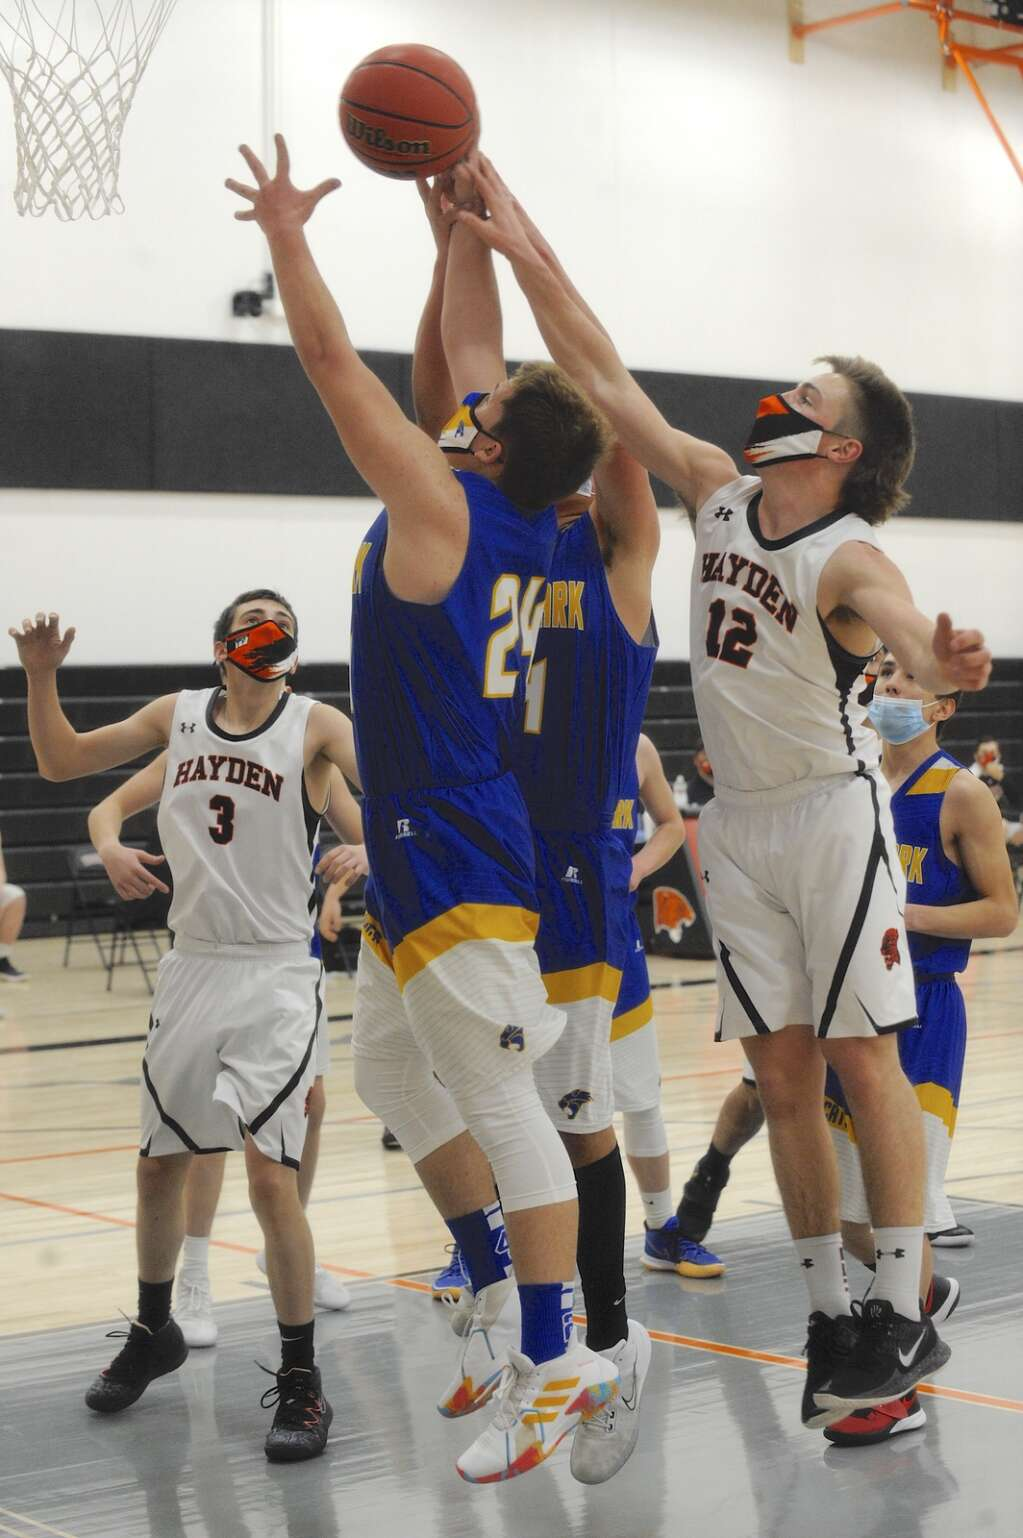 Hayden senior Liam Frentress tips a rebound during a game against North Park on Friday night. (Photo by Shelby Reardon)